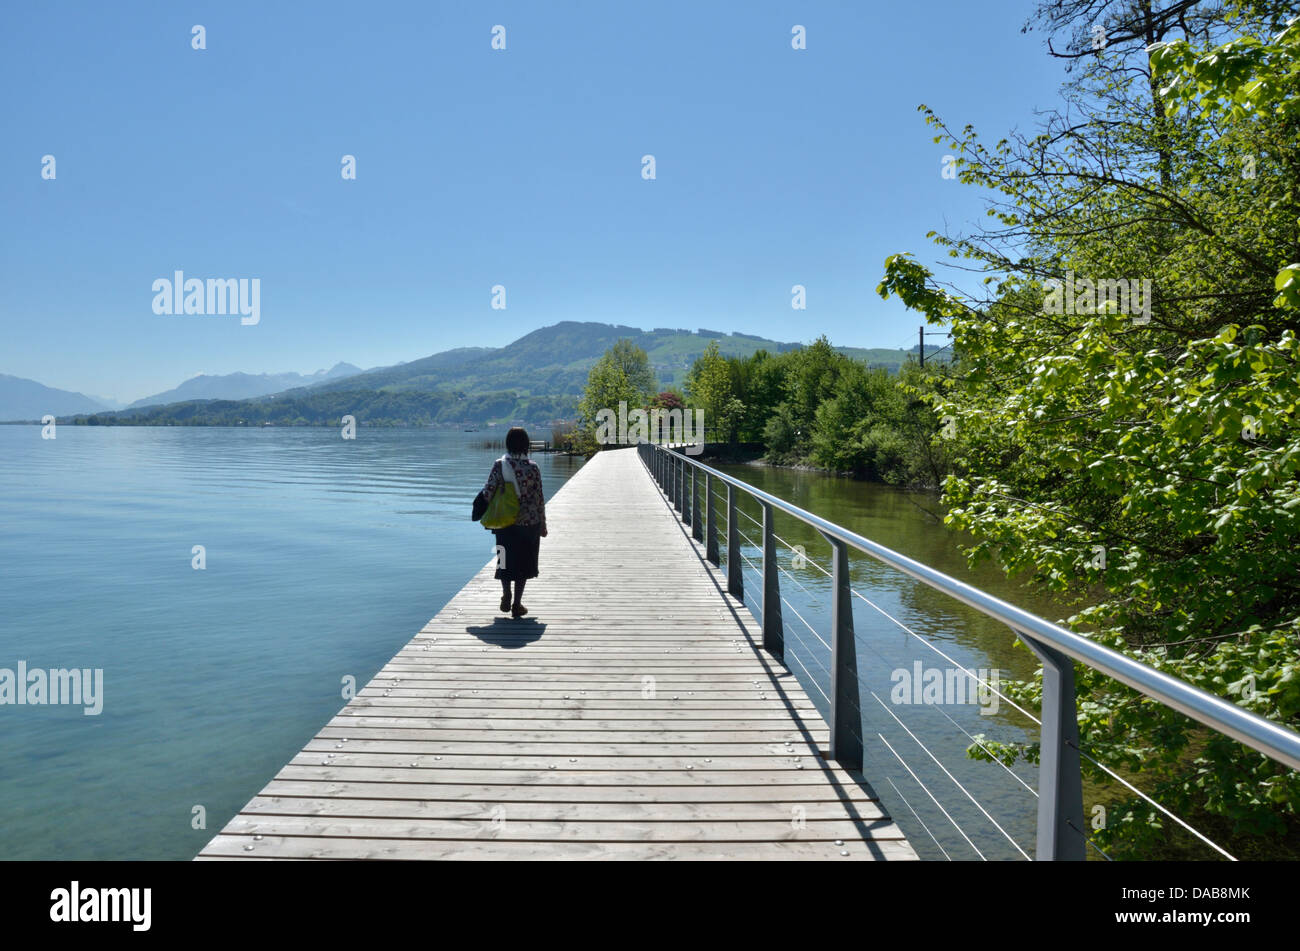 Wooden causeway on Lake Zurich near Wädenswil, Switzerland - Stock Image